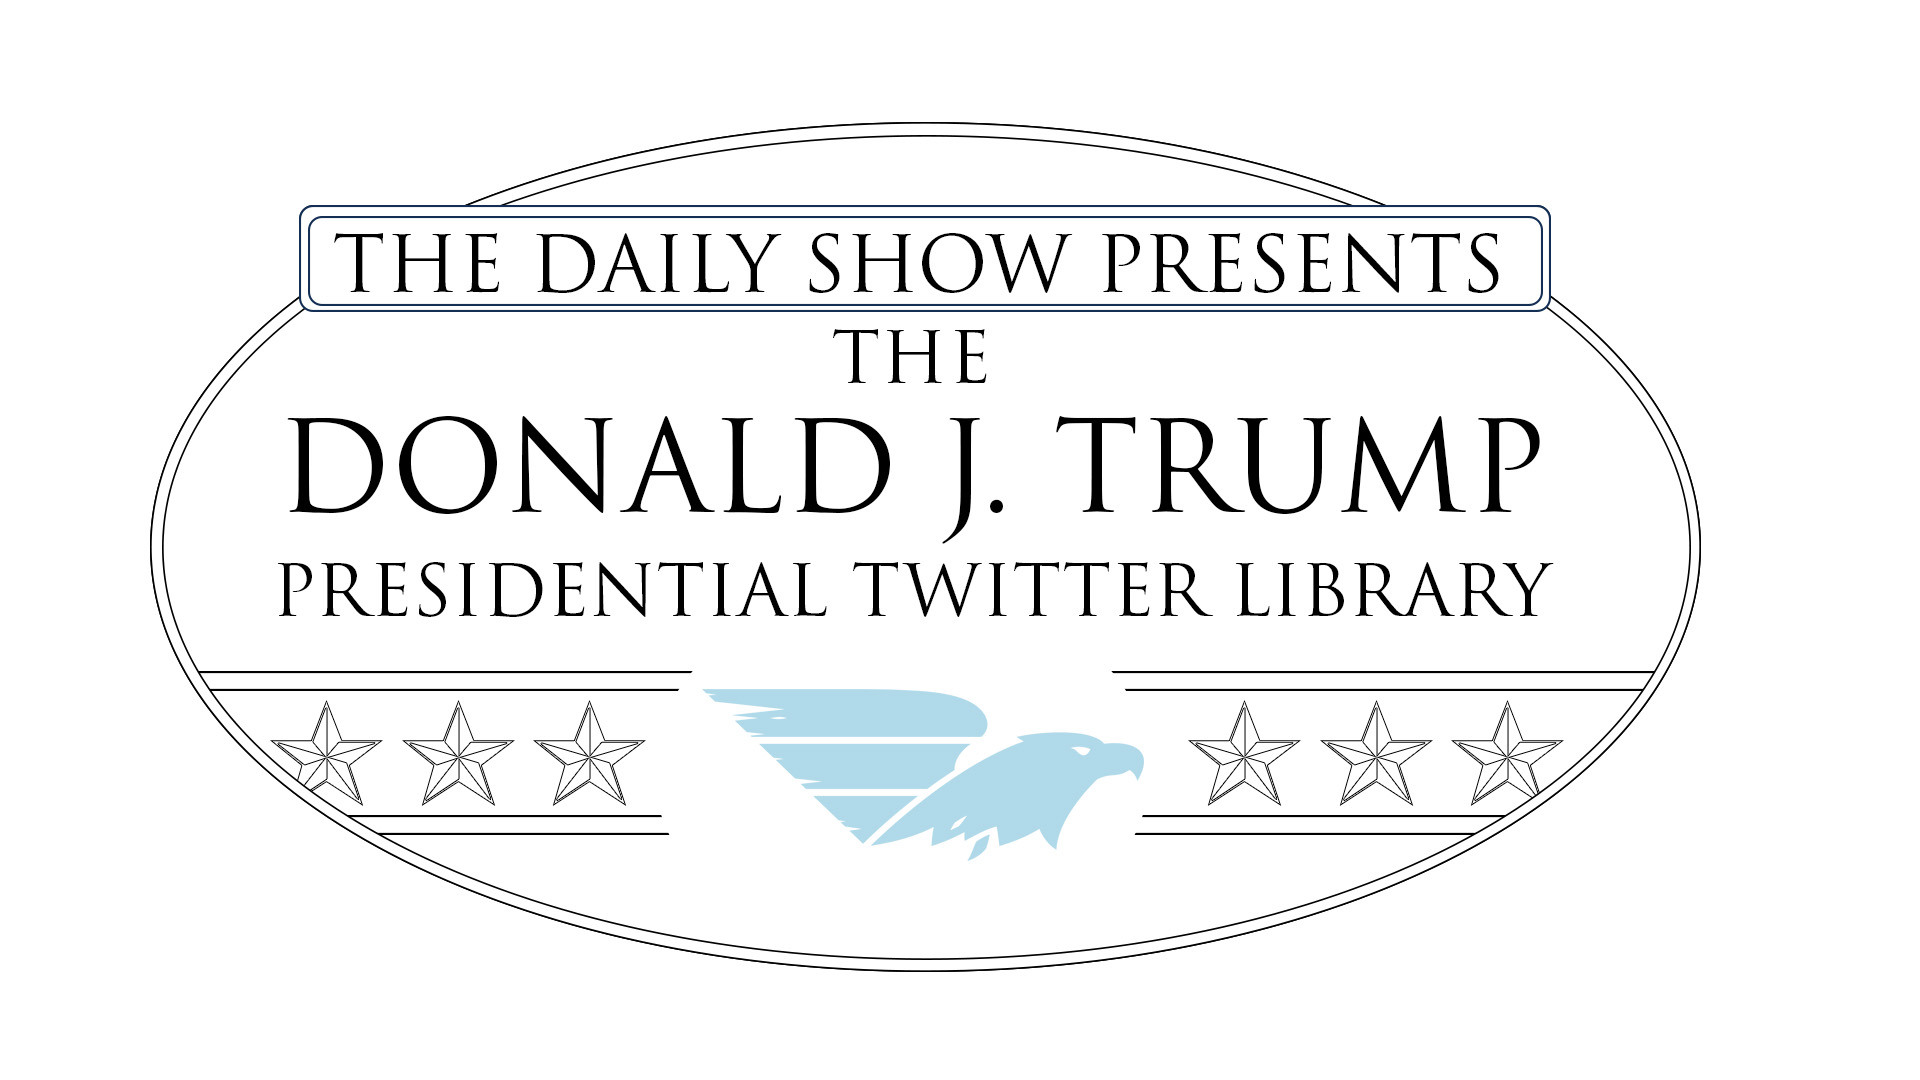 - TRUMP TWITTER LIBRARY